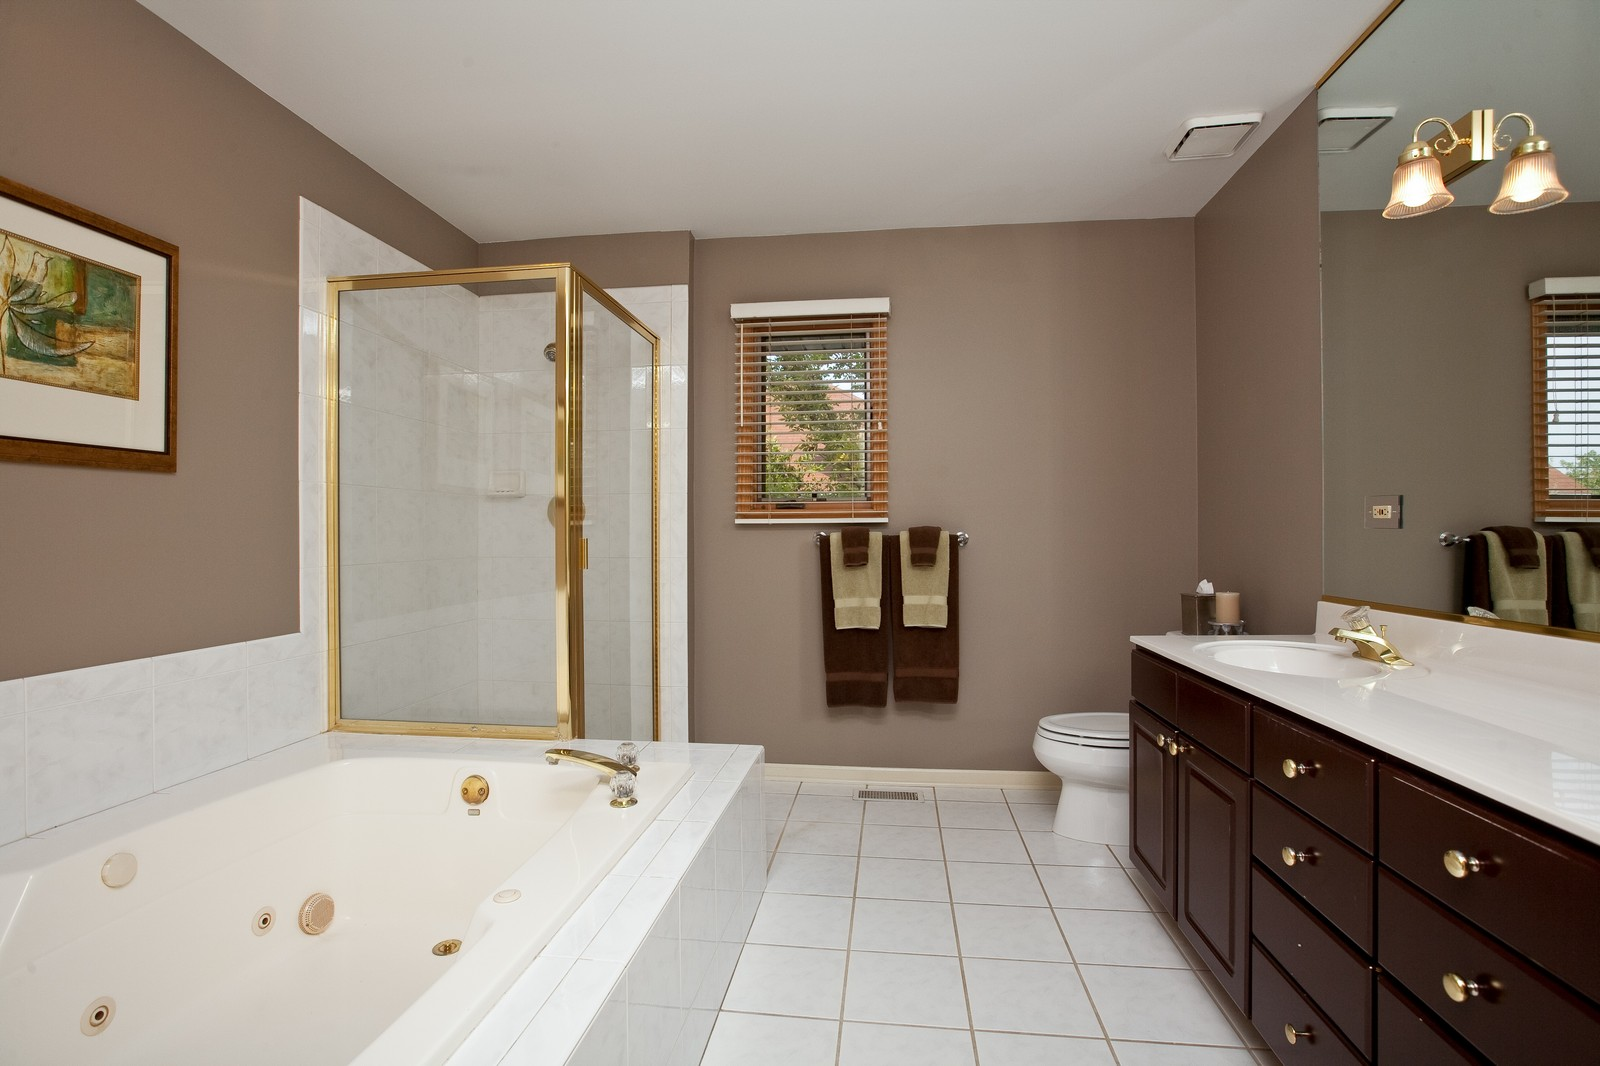 Real Estate Photography - 1031 W. 119th St, Lemont, IL, 60439 - Master Bathroom